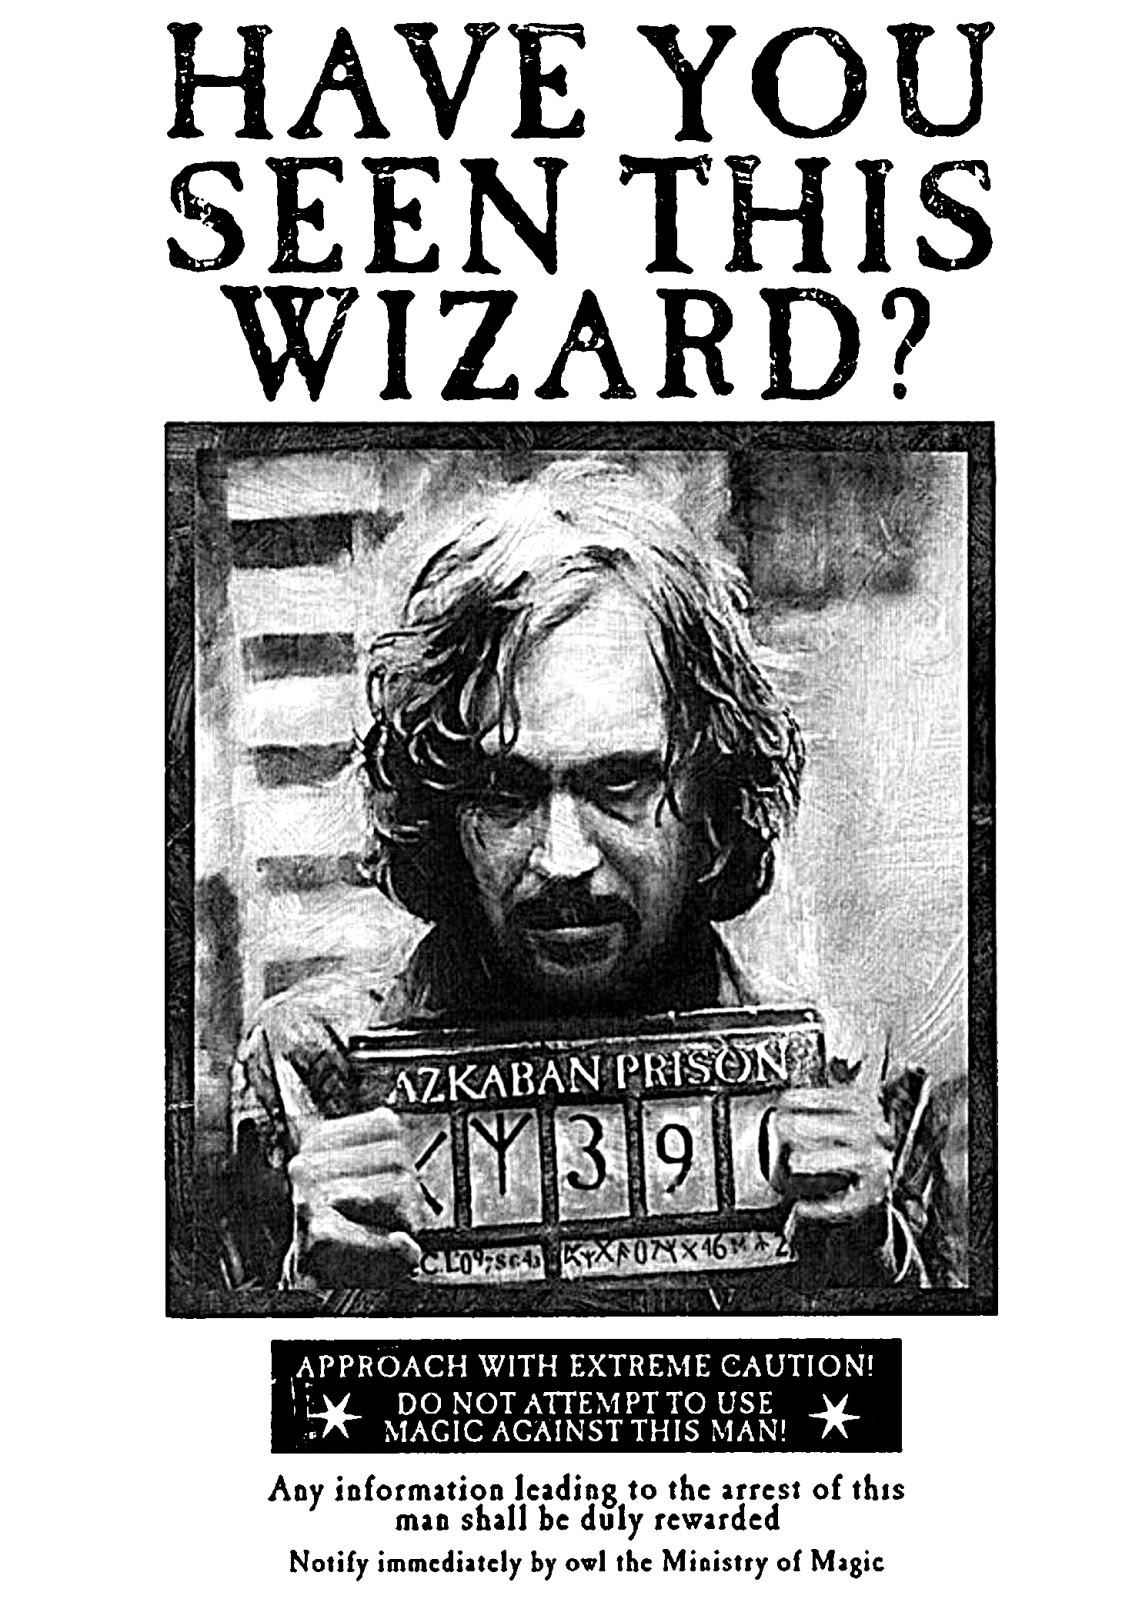 Looking For Harry Potter Sirius Black Wanted Poster   Rpf Costume - Free Printable Harry Potter Posters